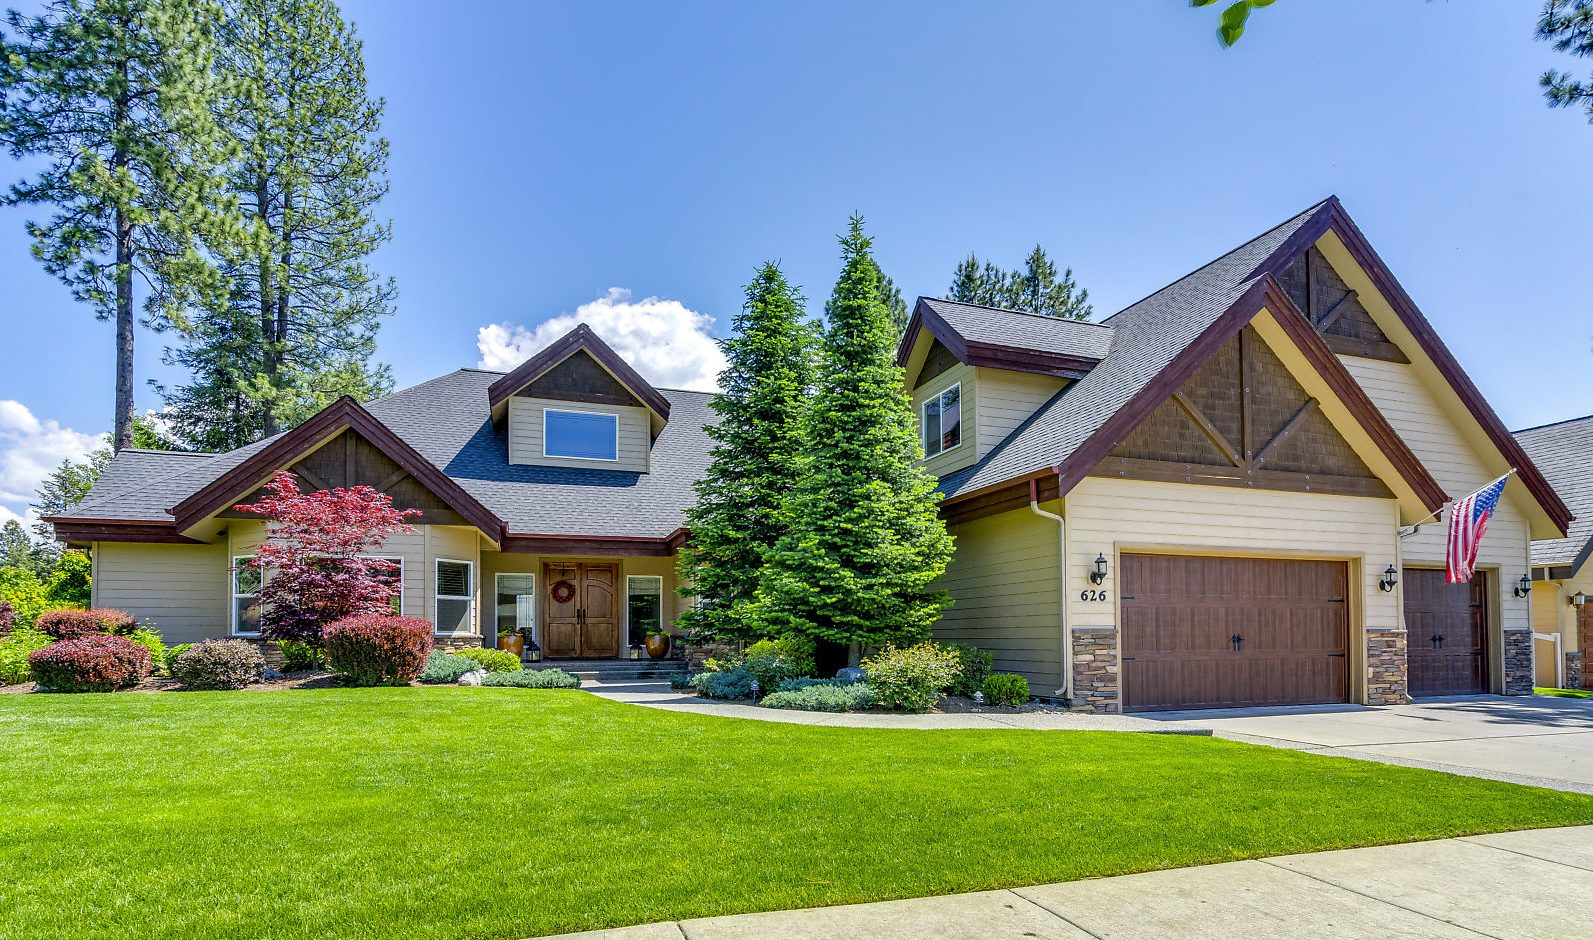 Typical higher end home in Coeur dAlene